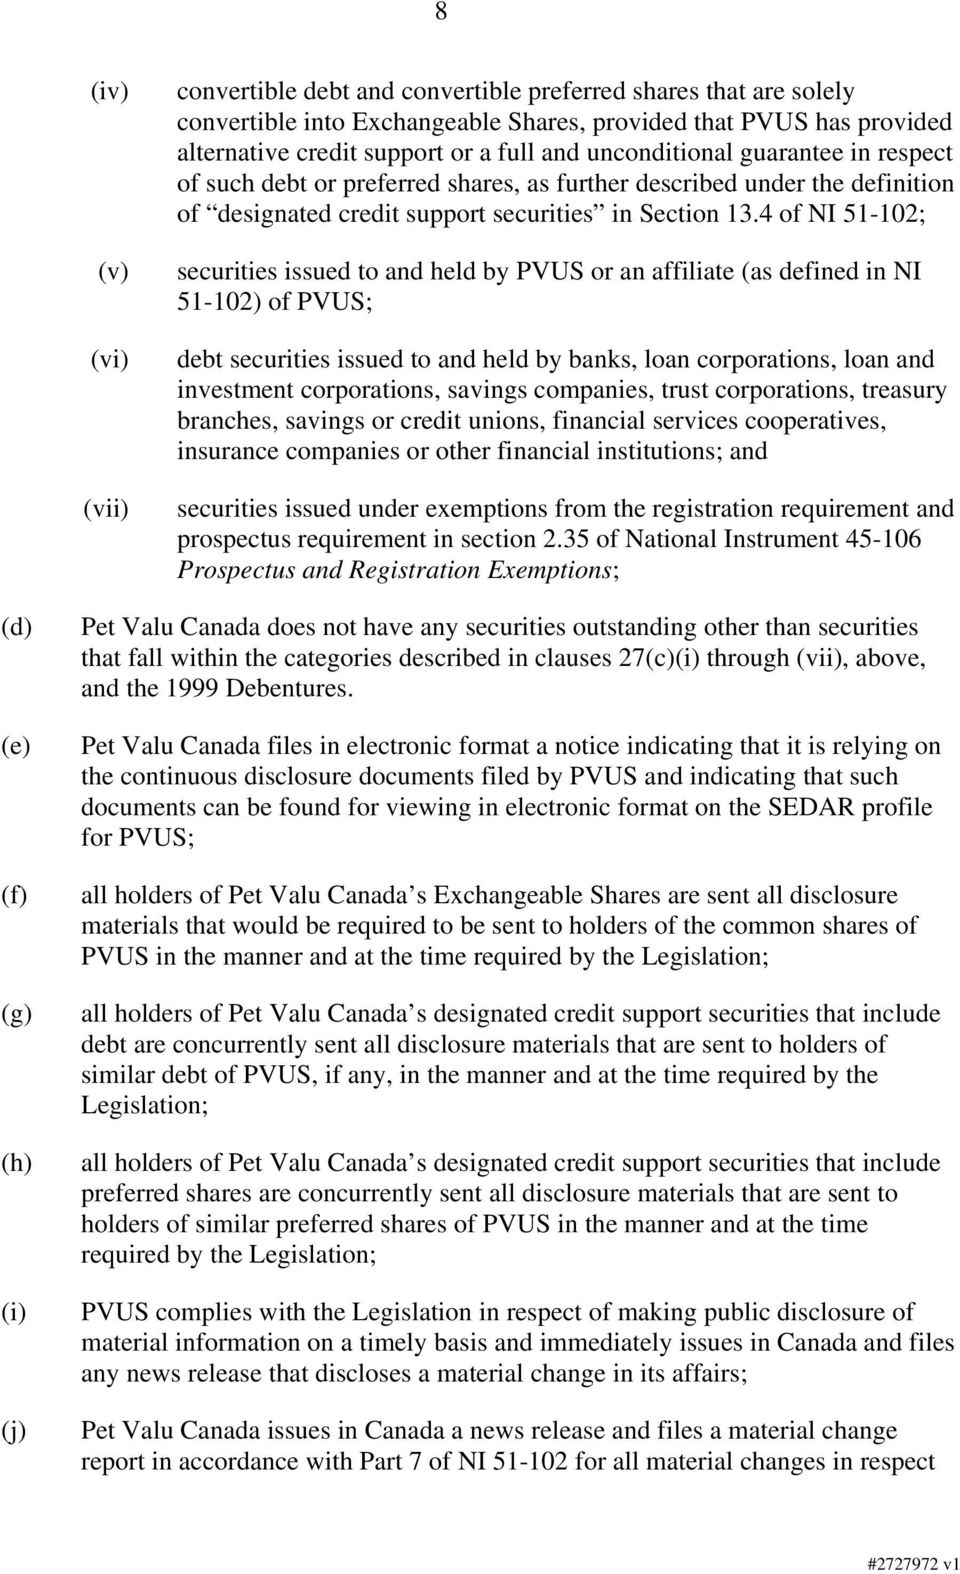 4 of NI 51-102; securities issued to and held by PVUS or an affiliate (as defined in NI 51-102) of PVUS; debt securities issued to and held by banks, loan corporations, loan and investment